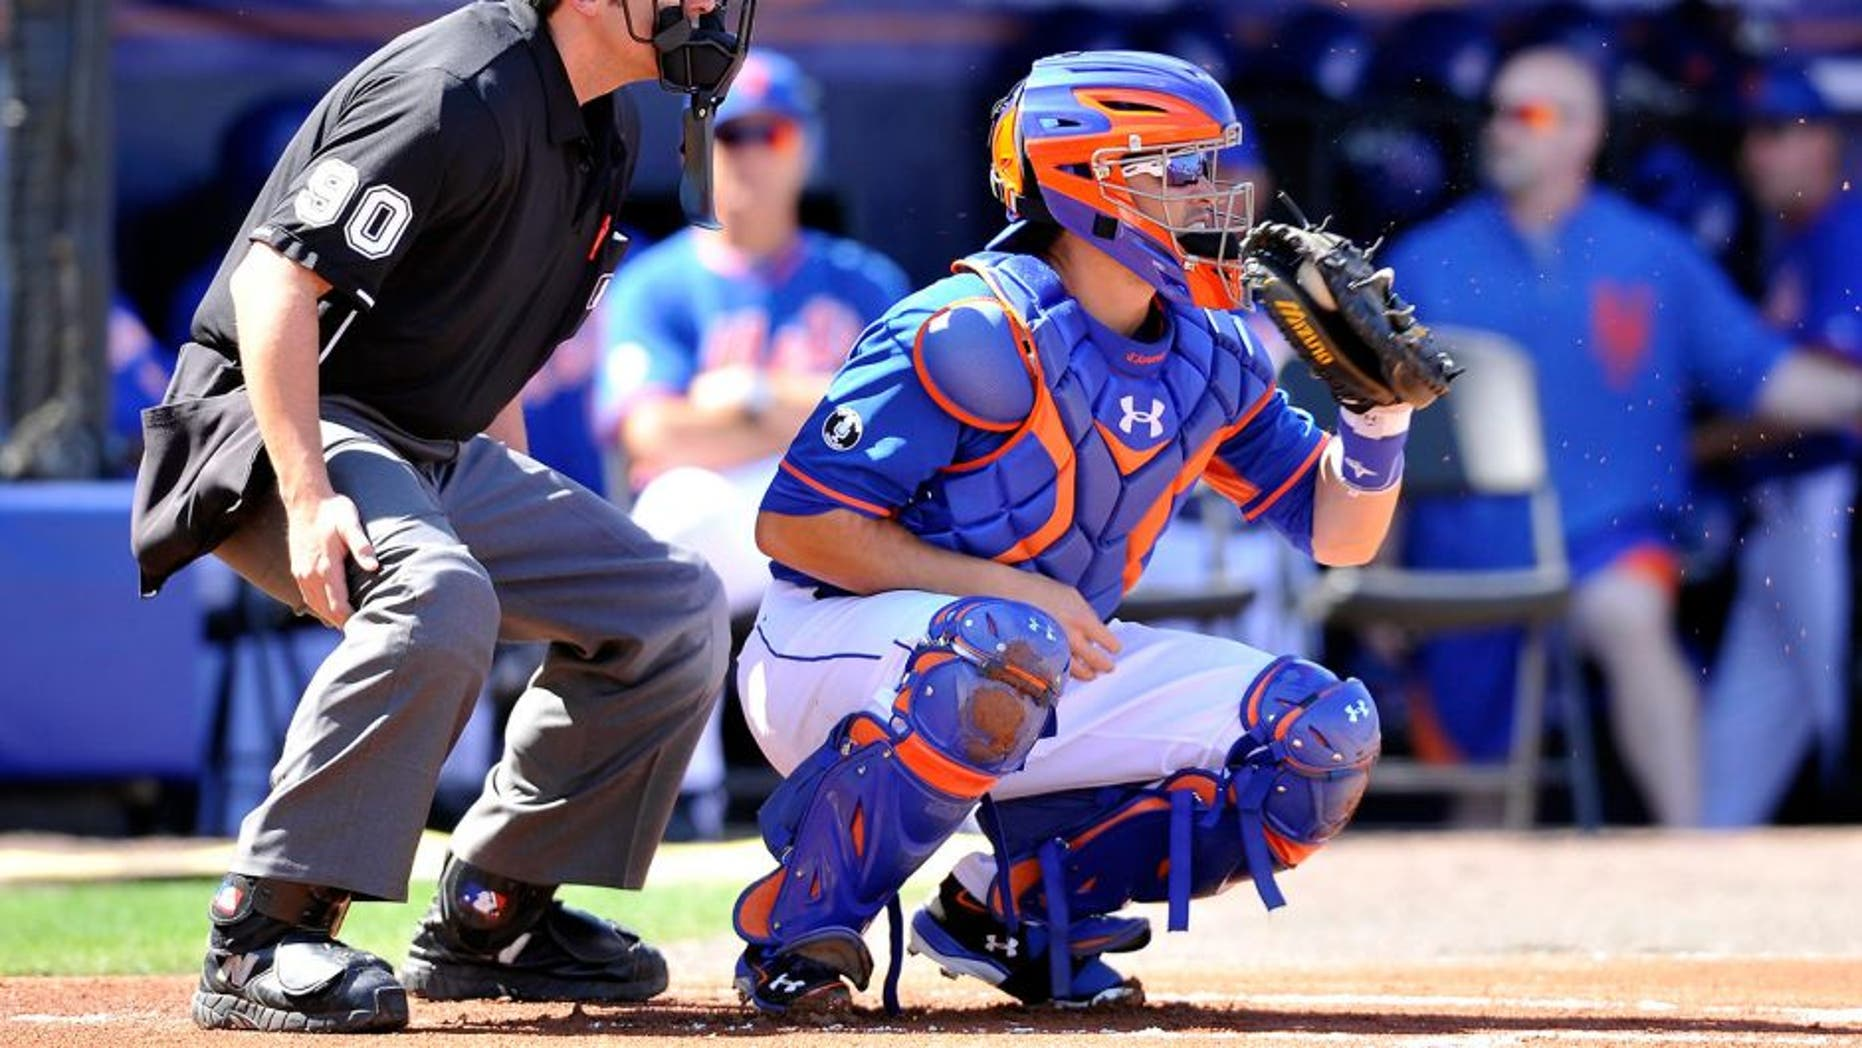 Feb 28, 2014; Port St. Lucie, FL, USA; New York Mets catcher Travis d'Arnaud (15) catches a pitch against the Washington Nationals in spring training action at Tradition Stadium. Mandatory Credit: Brad Barr-USA TODAY Sports